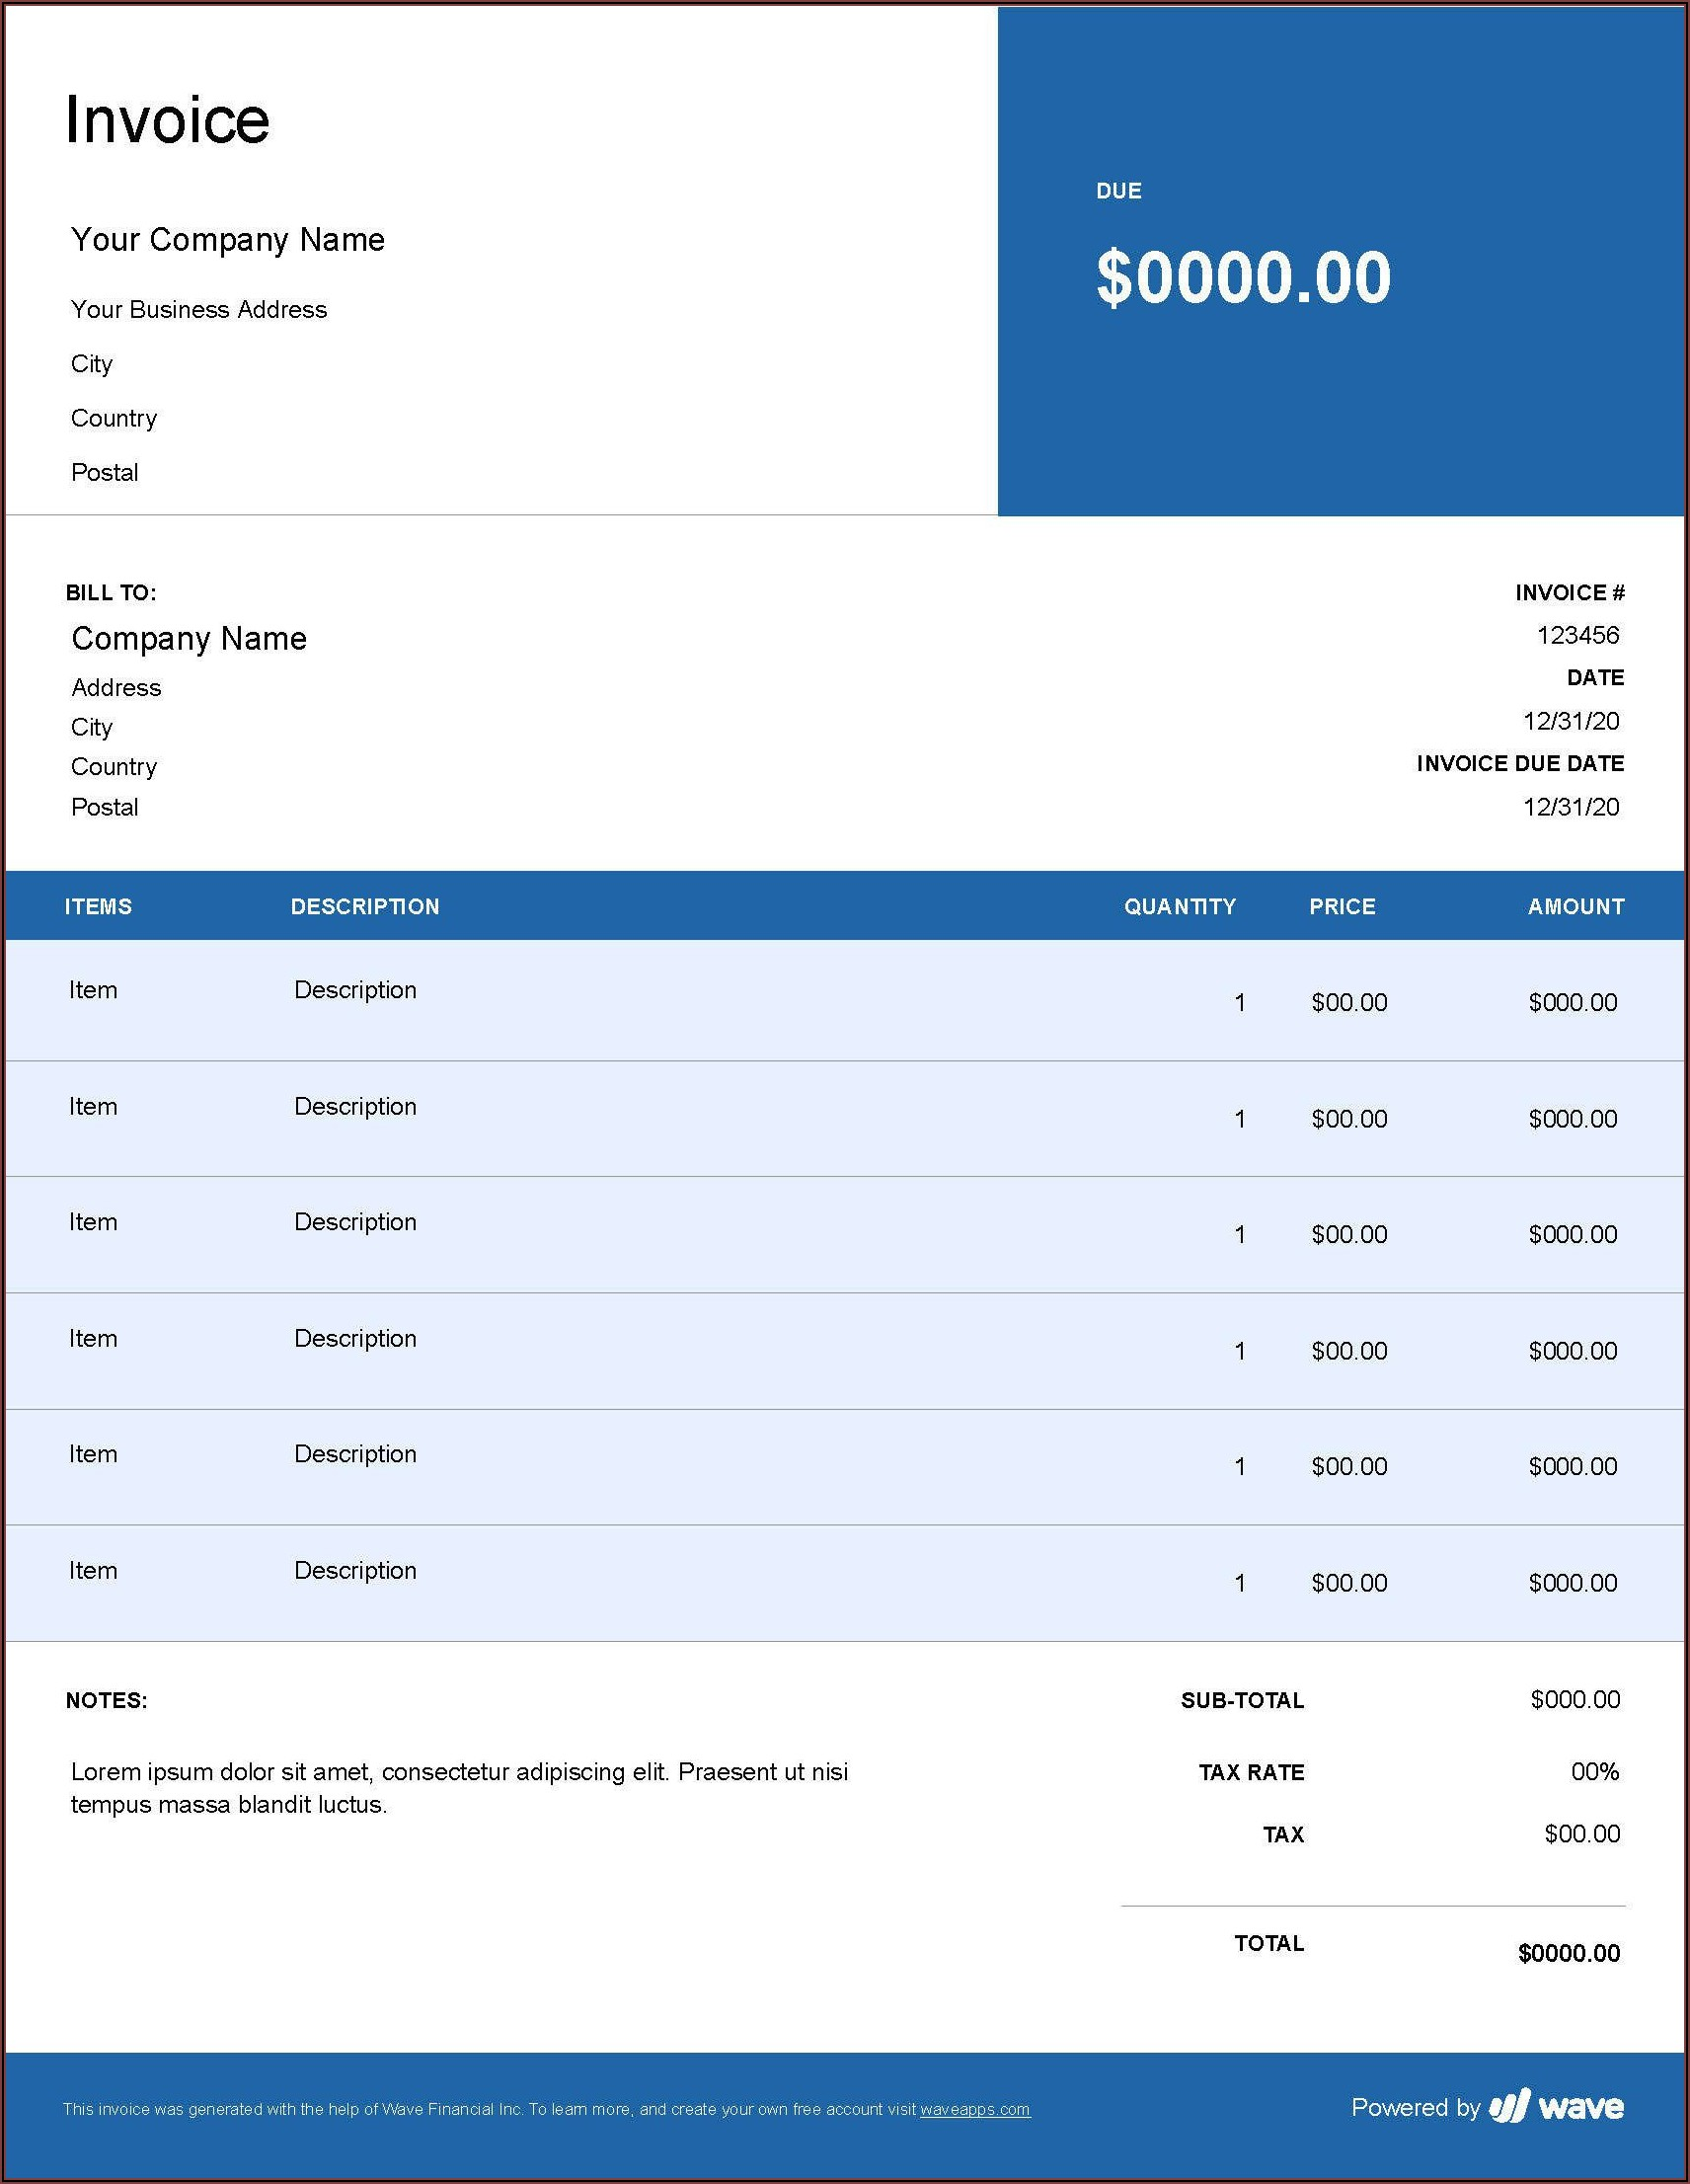 Invoice Template For Quickbooks